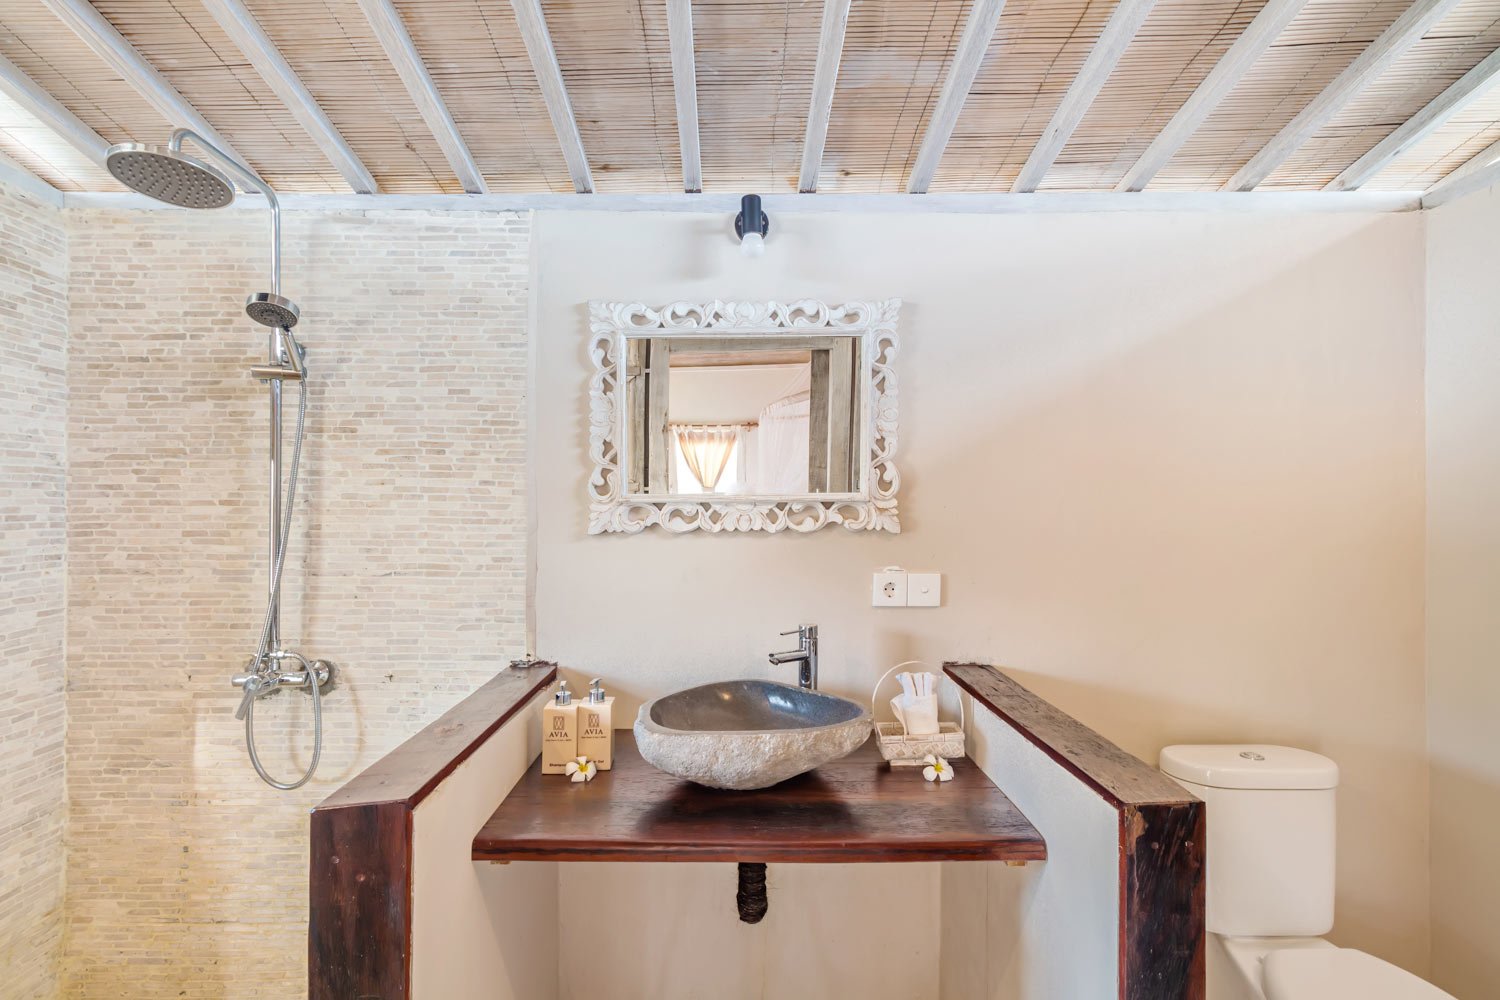 Design bathroom - Gili Meno - Avia villa resort